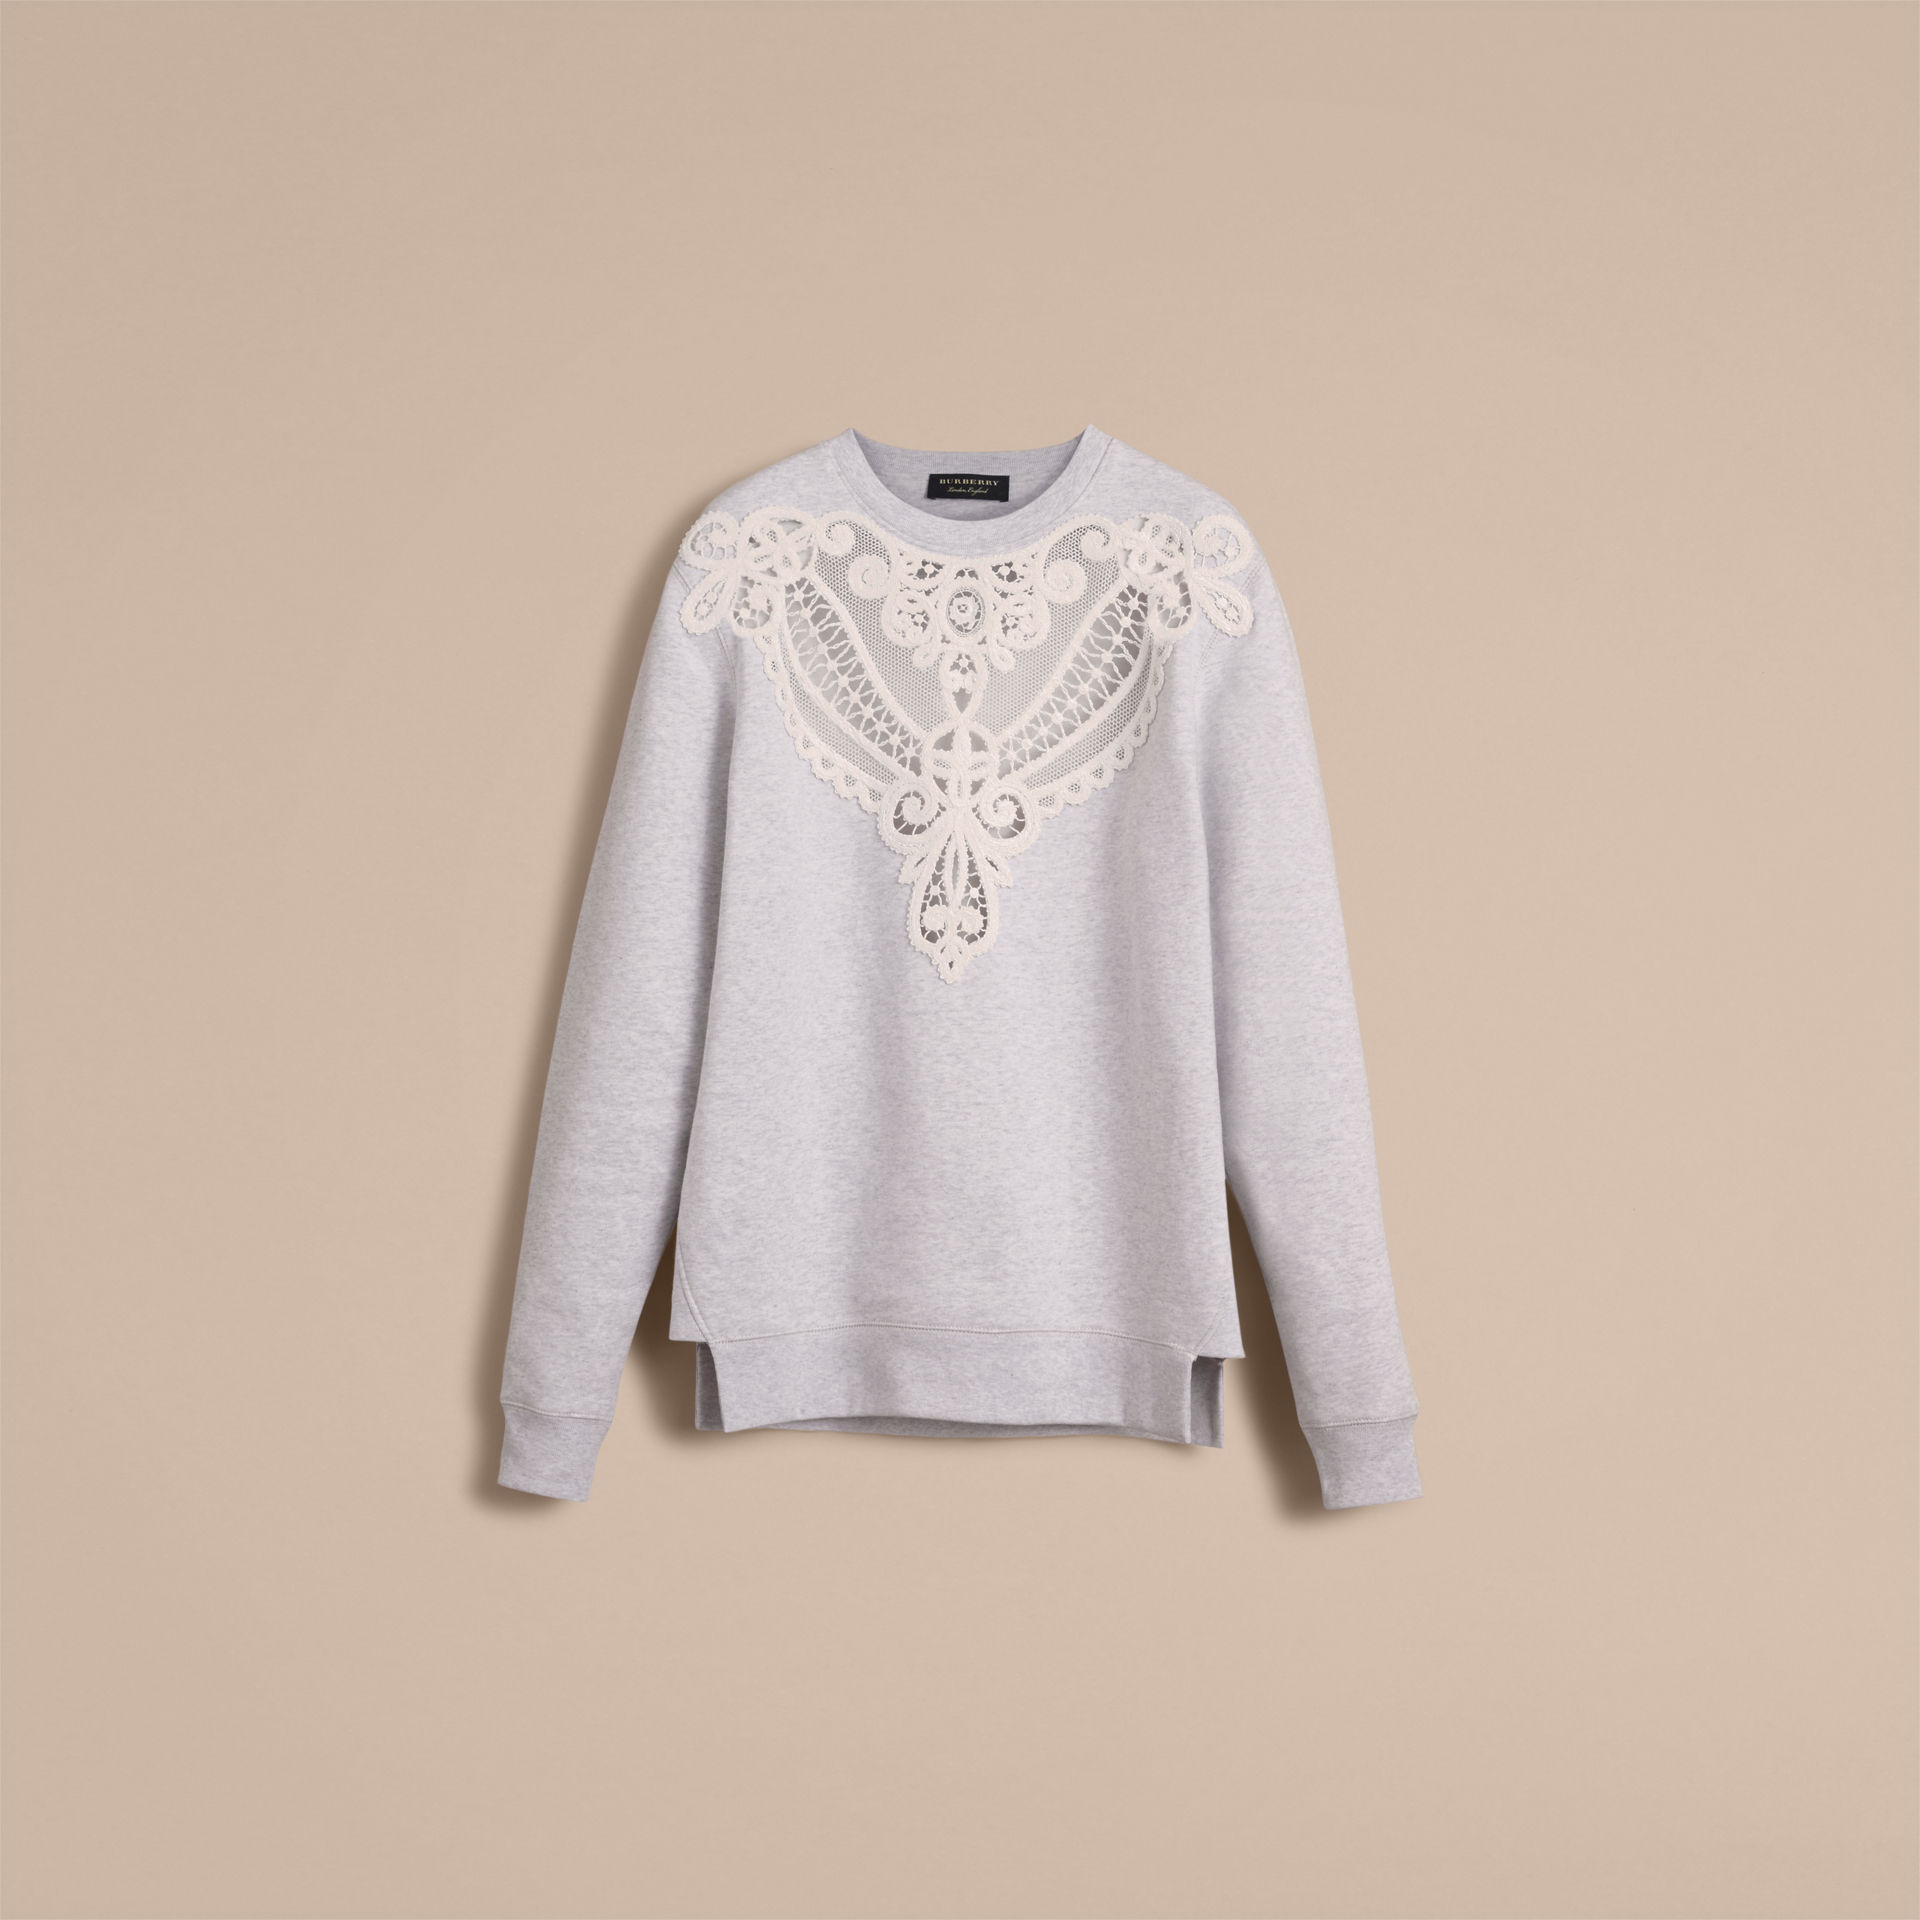 Burberry Light Grey Melange Unisex Lace Cutwork Sweatshirt